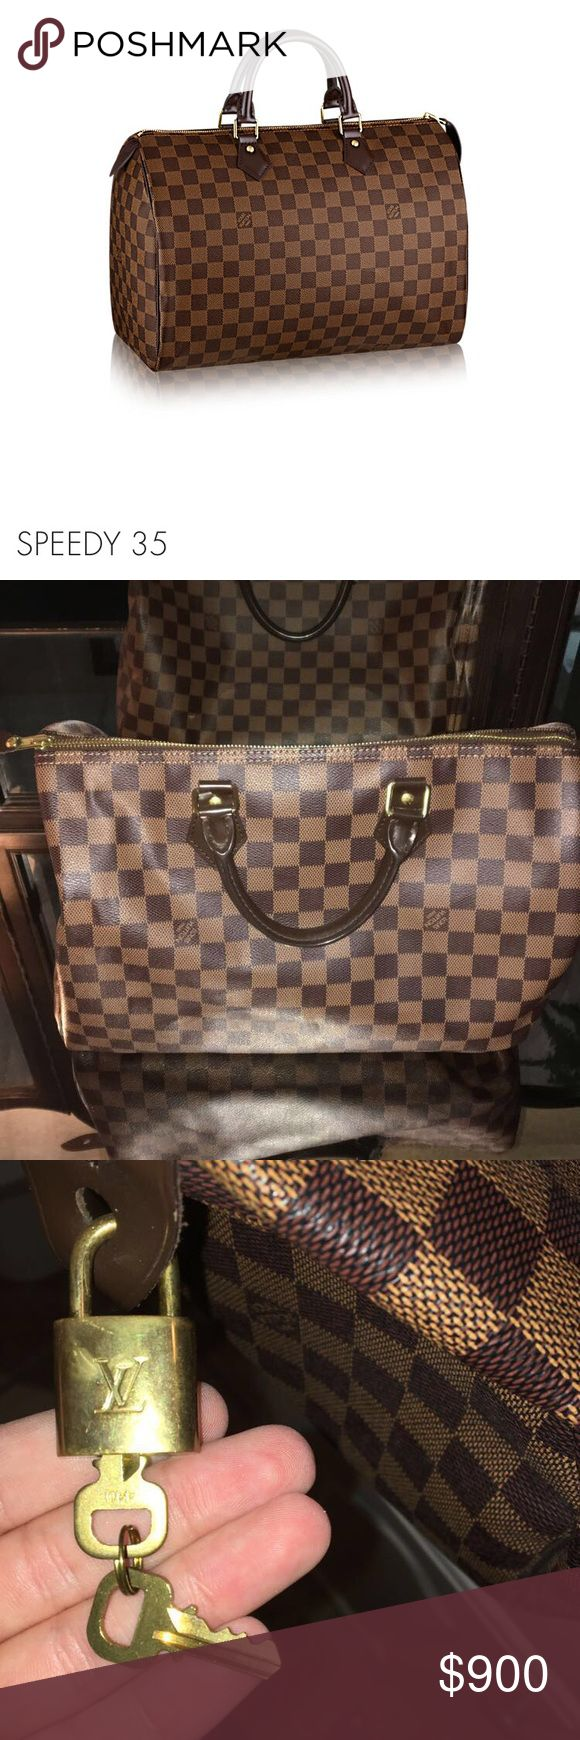 Louis Vuitton Speedy 35 Authentic Louis Vuitton speedy 35. Never used and comes with dust bag received with original purchase. Both keys come with original box. Louis Vuitton Bags Totes